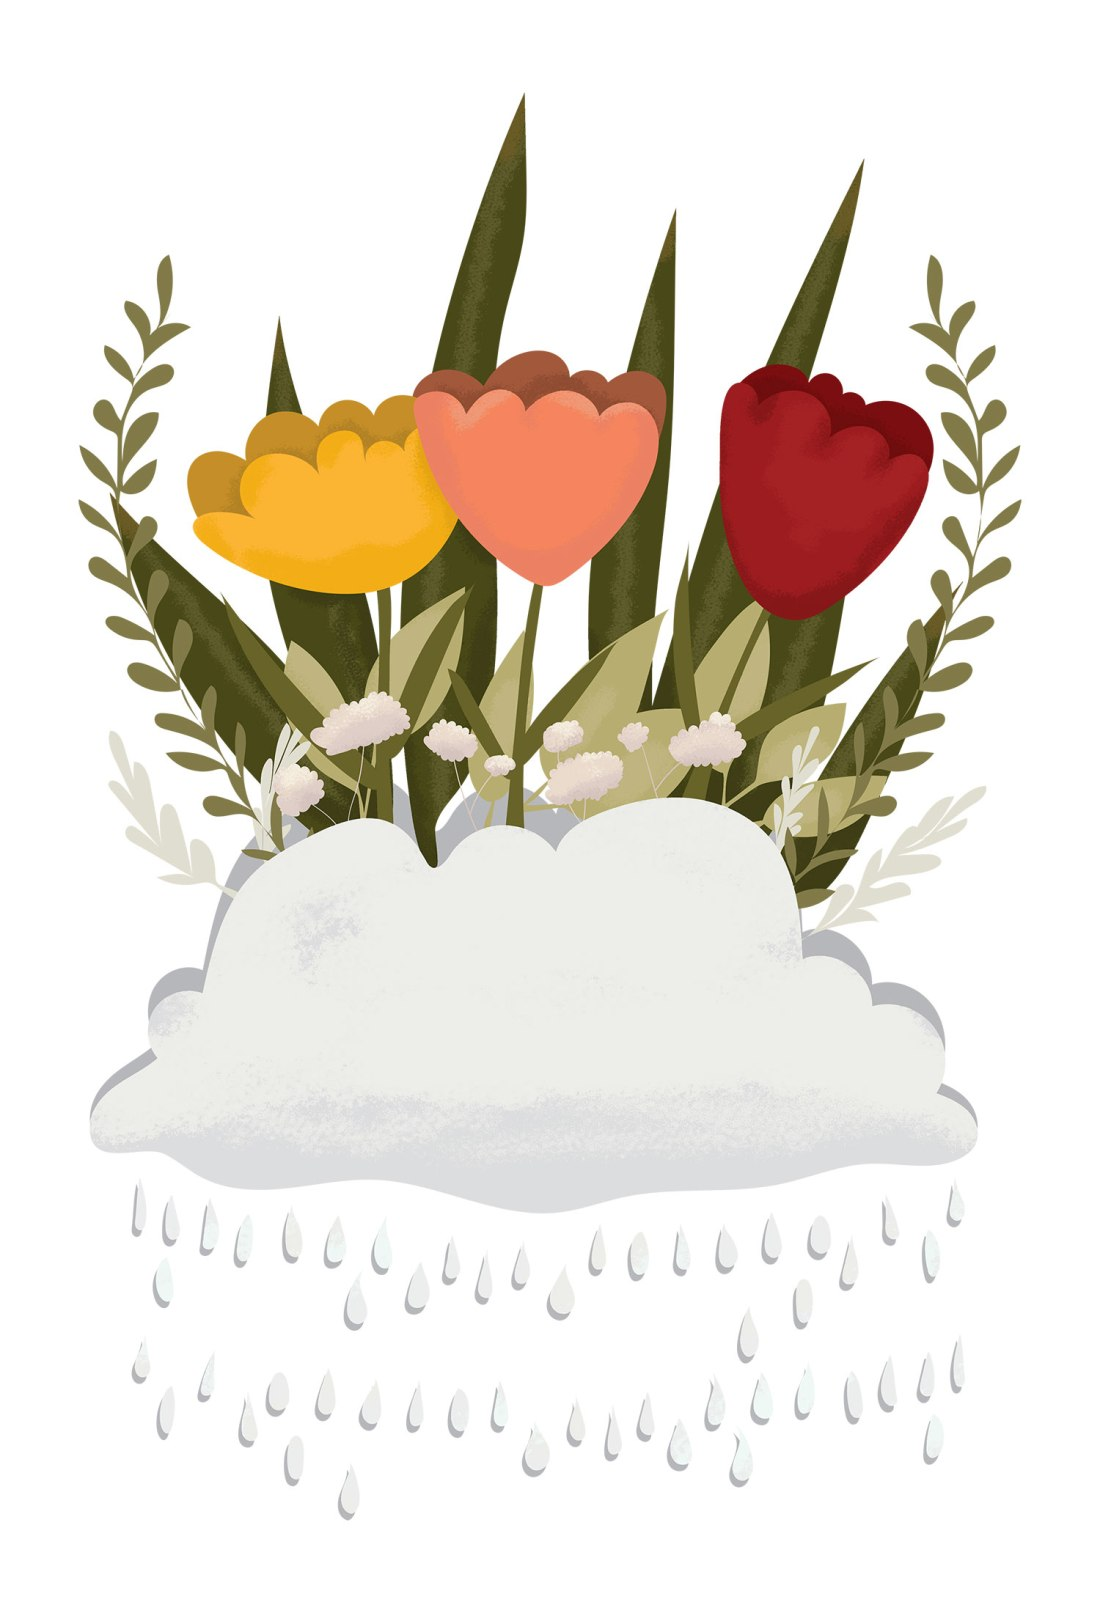 Let it rain, rain clouds growing flowers and plants, garden graphic